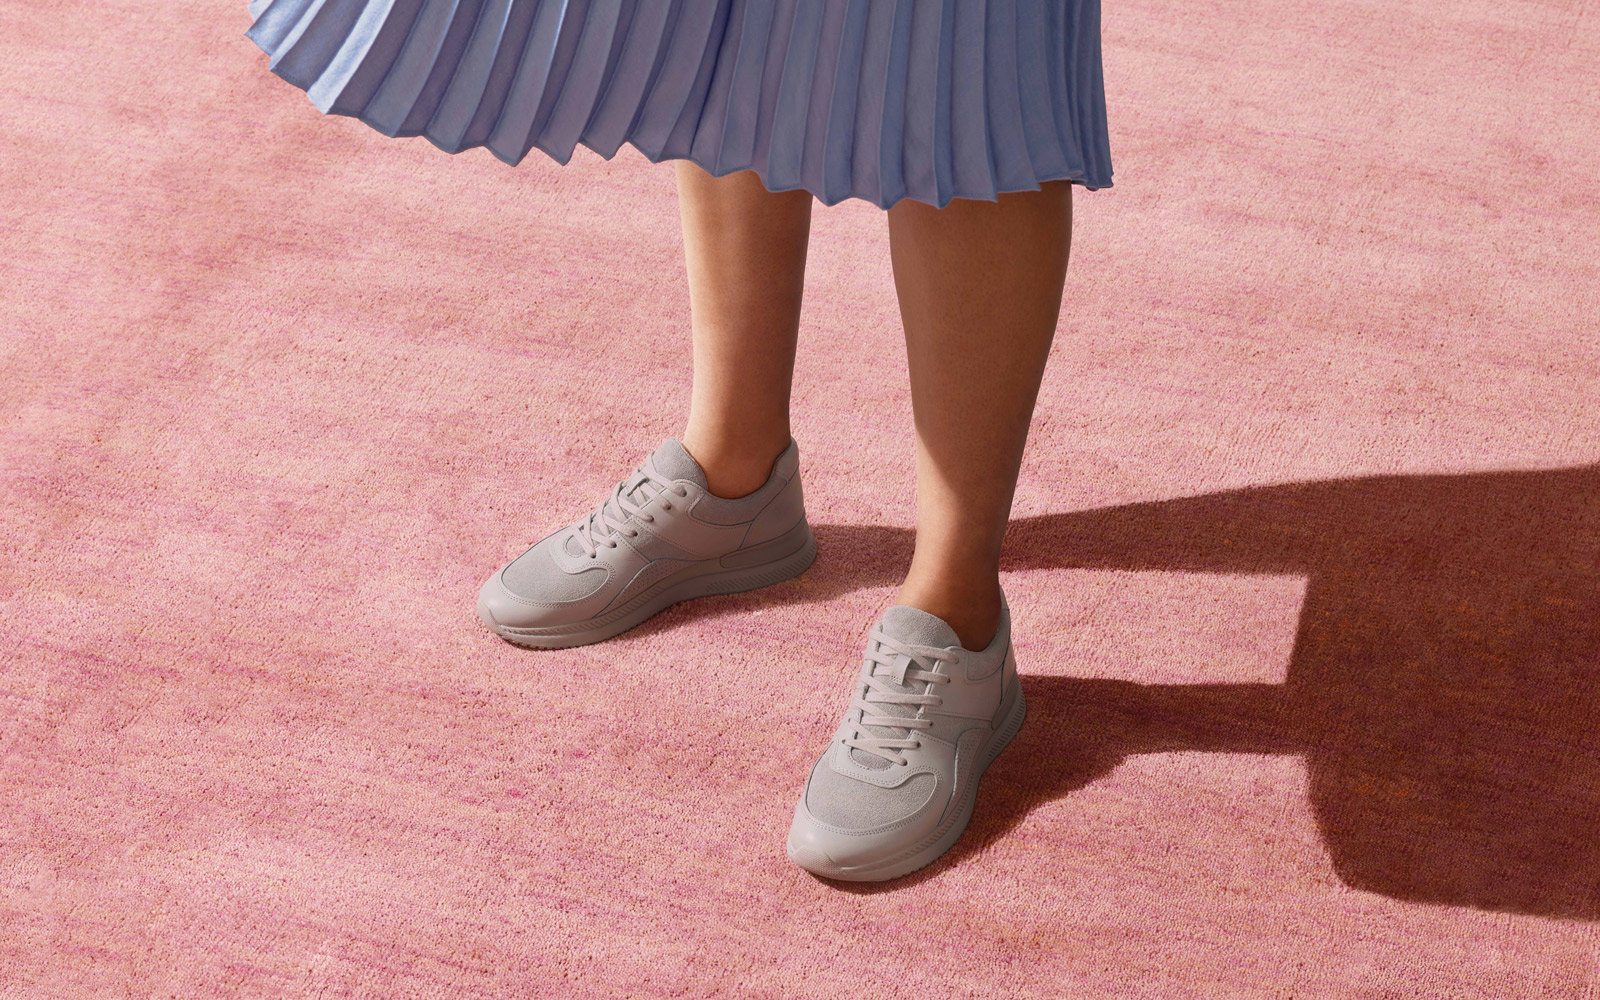 Everlane's Long-awaited Sneaker Isn't Just Comfortable — It's Incredibly Eco-friendly